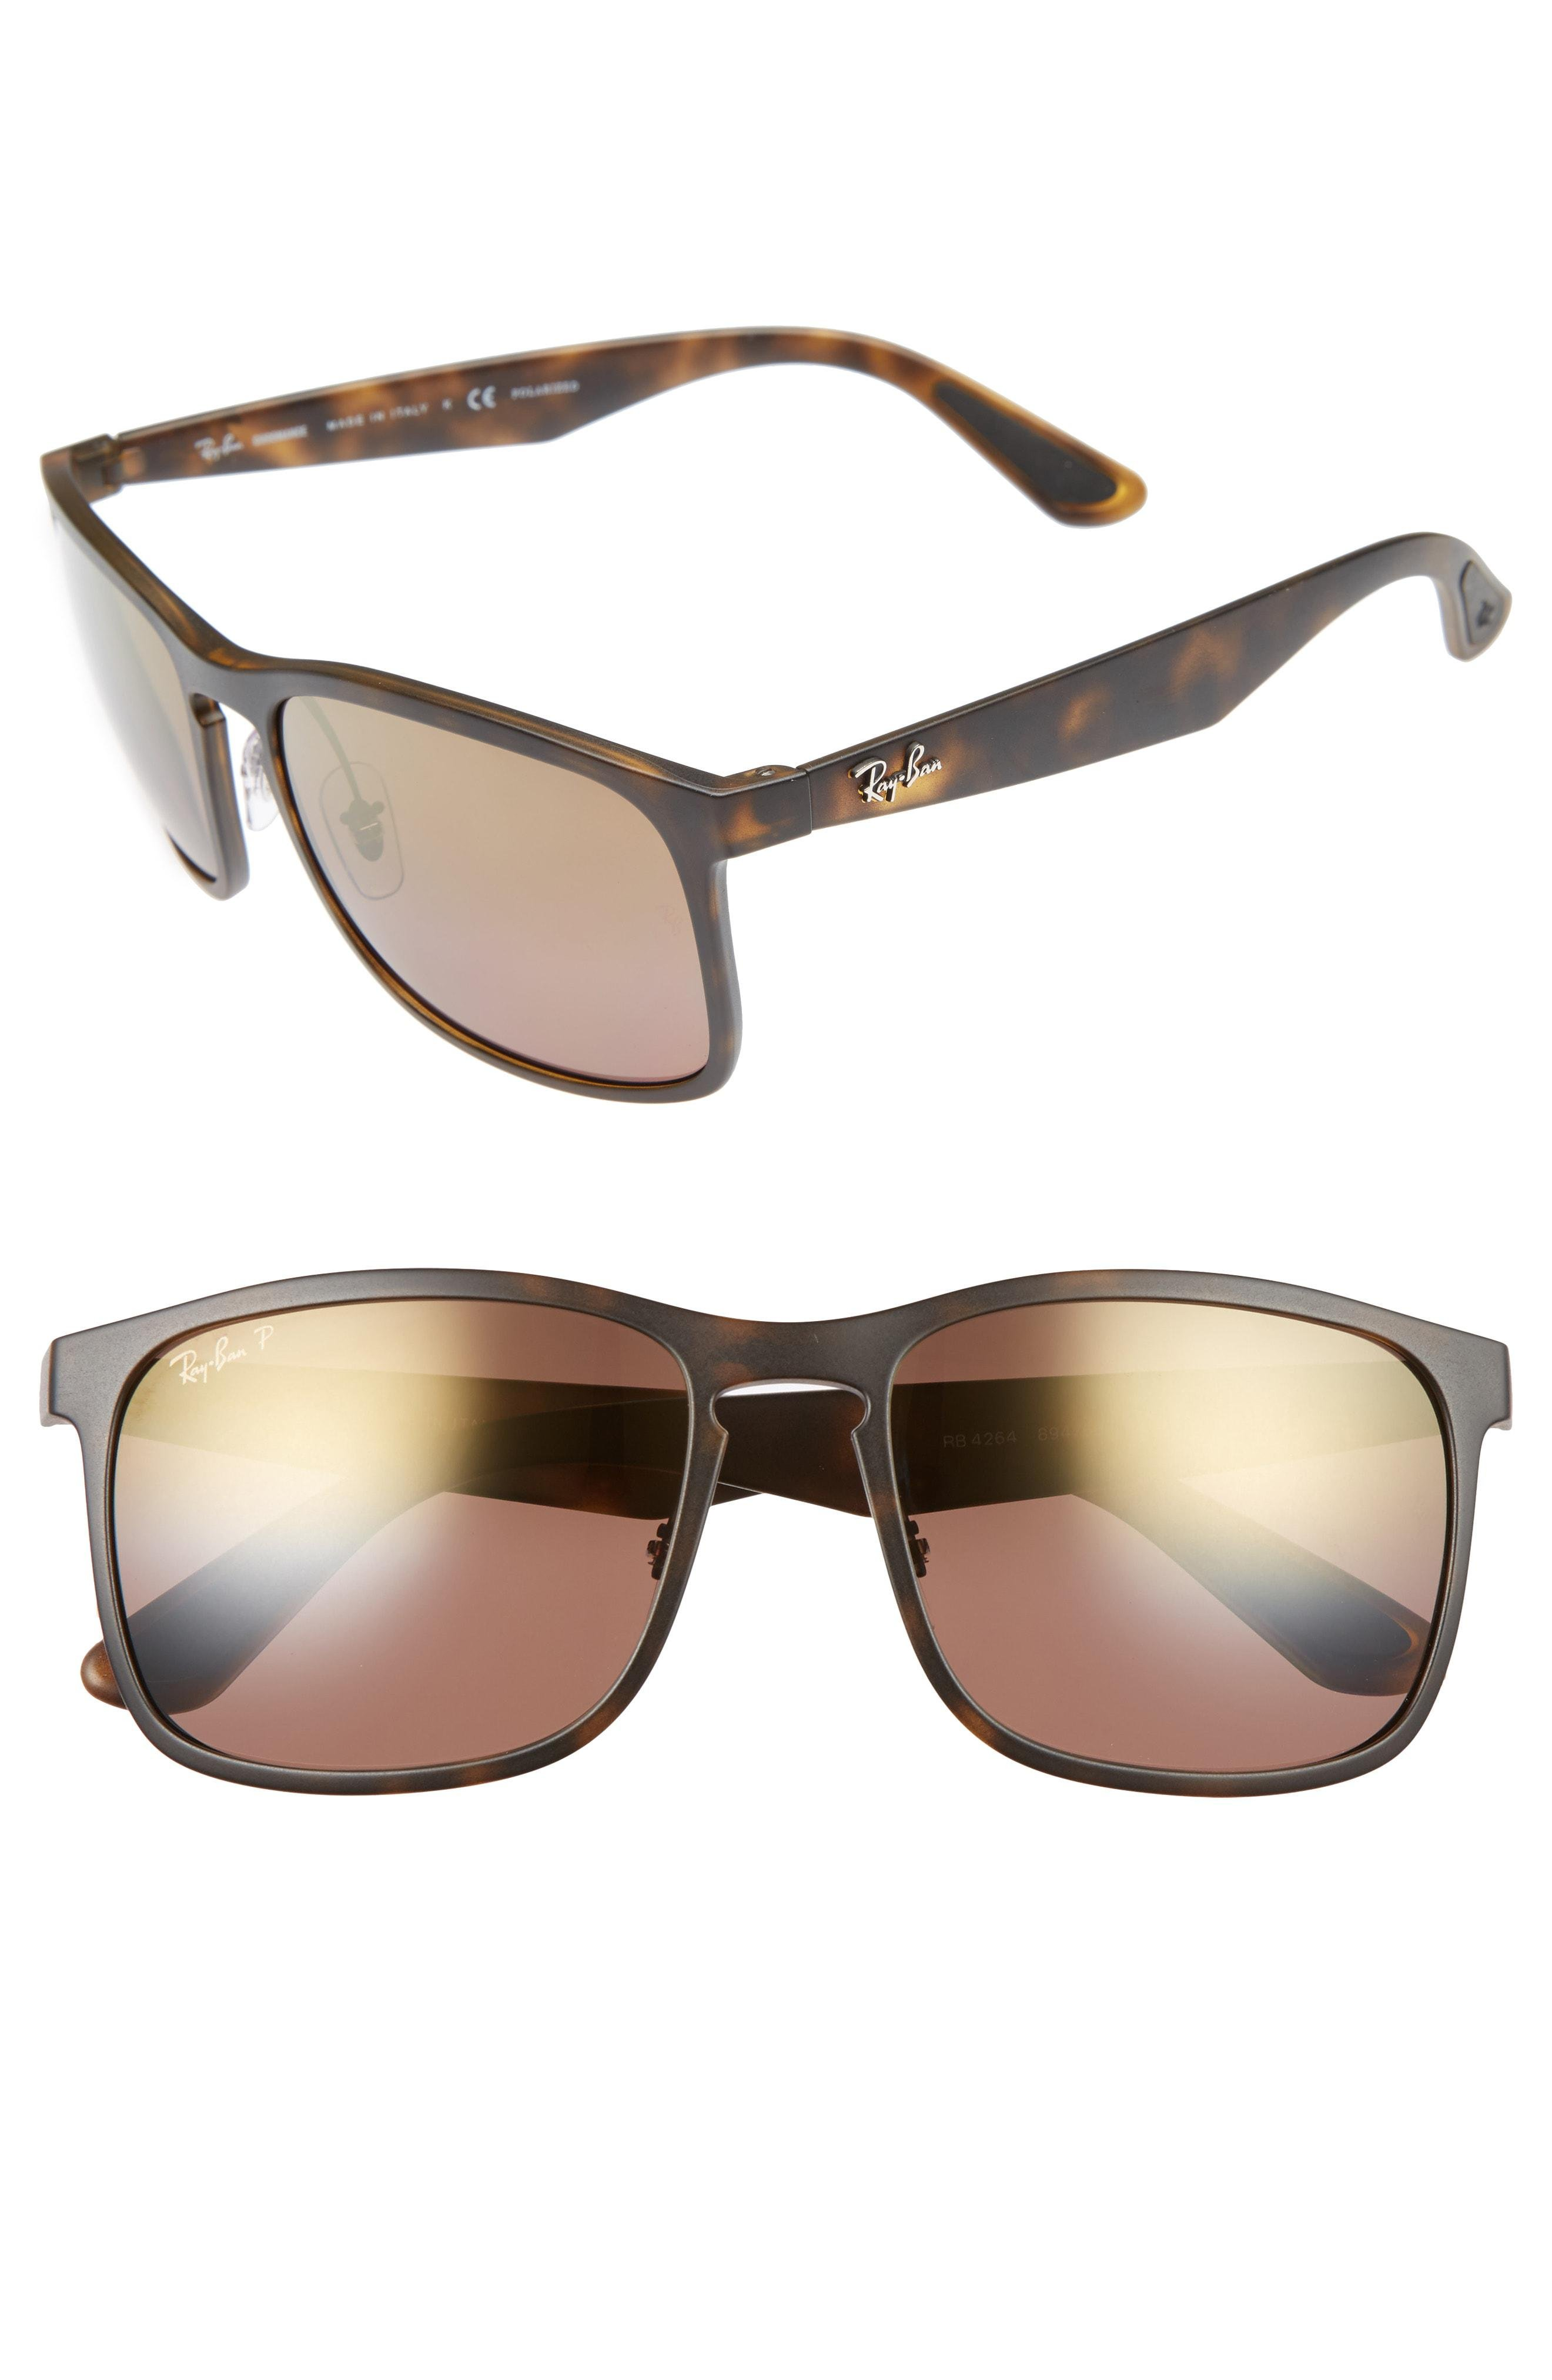 2529a374763 Lyst - Ray-Ban 58mm Chromance Sunglasses in Brown for Men